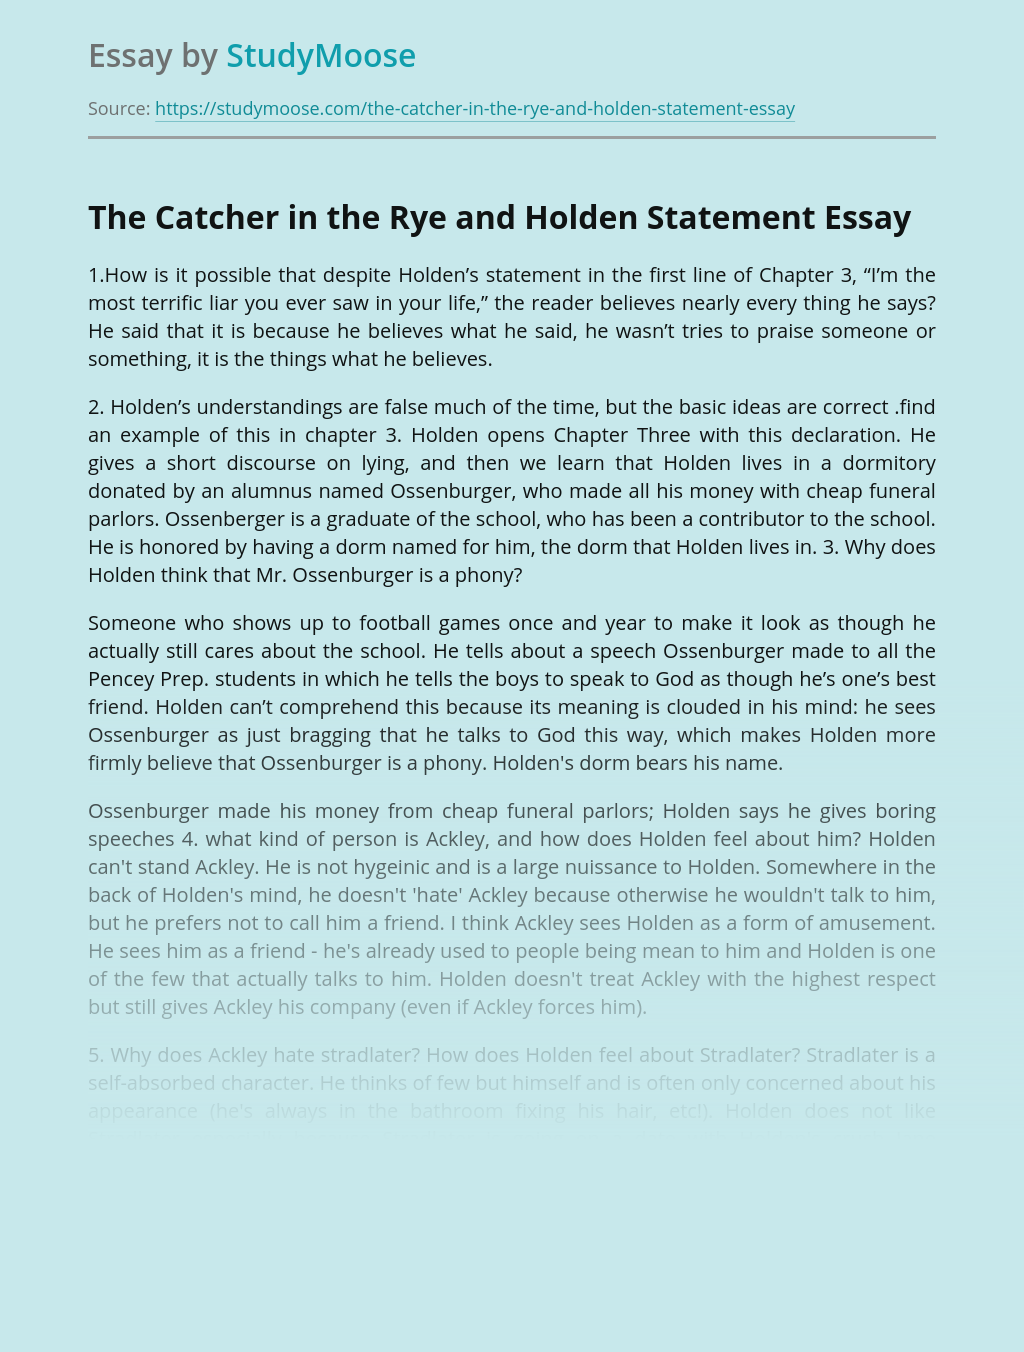 The Catcher in the Rye and Holden Statement